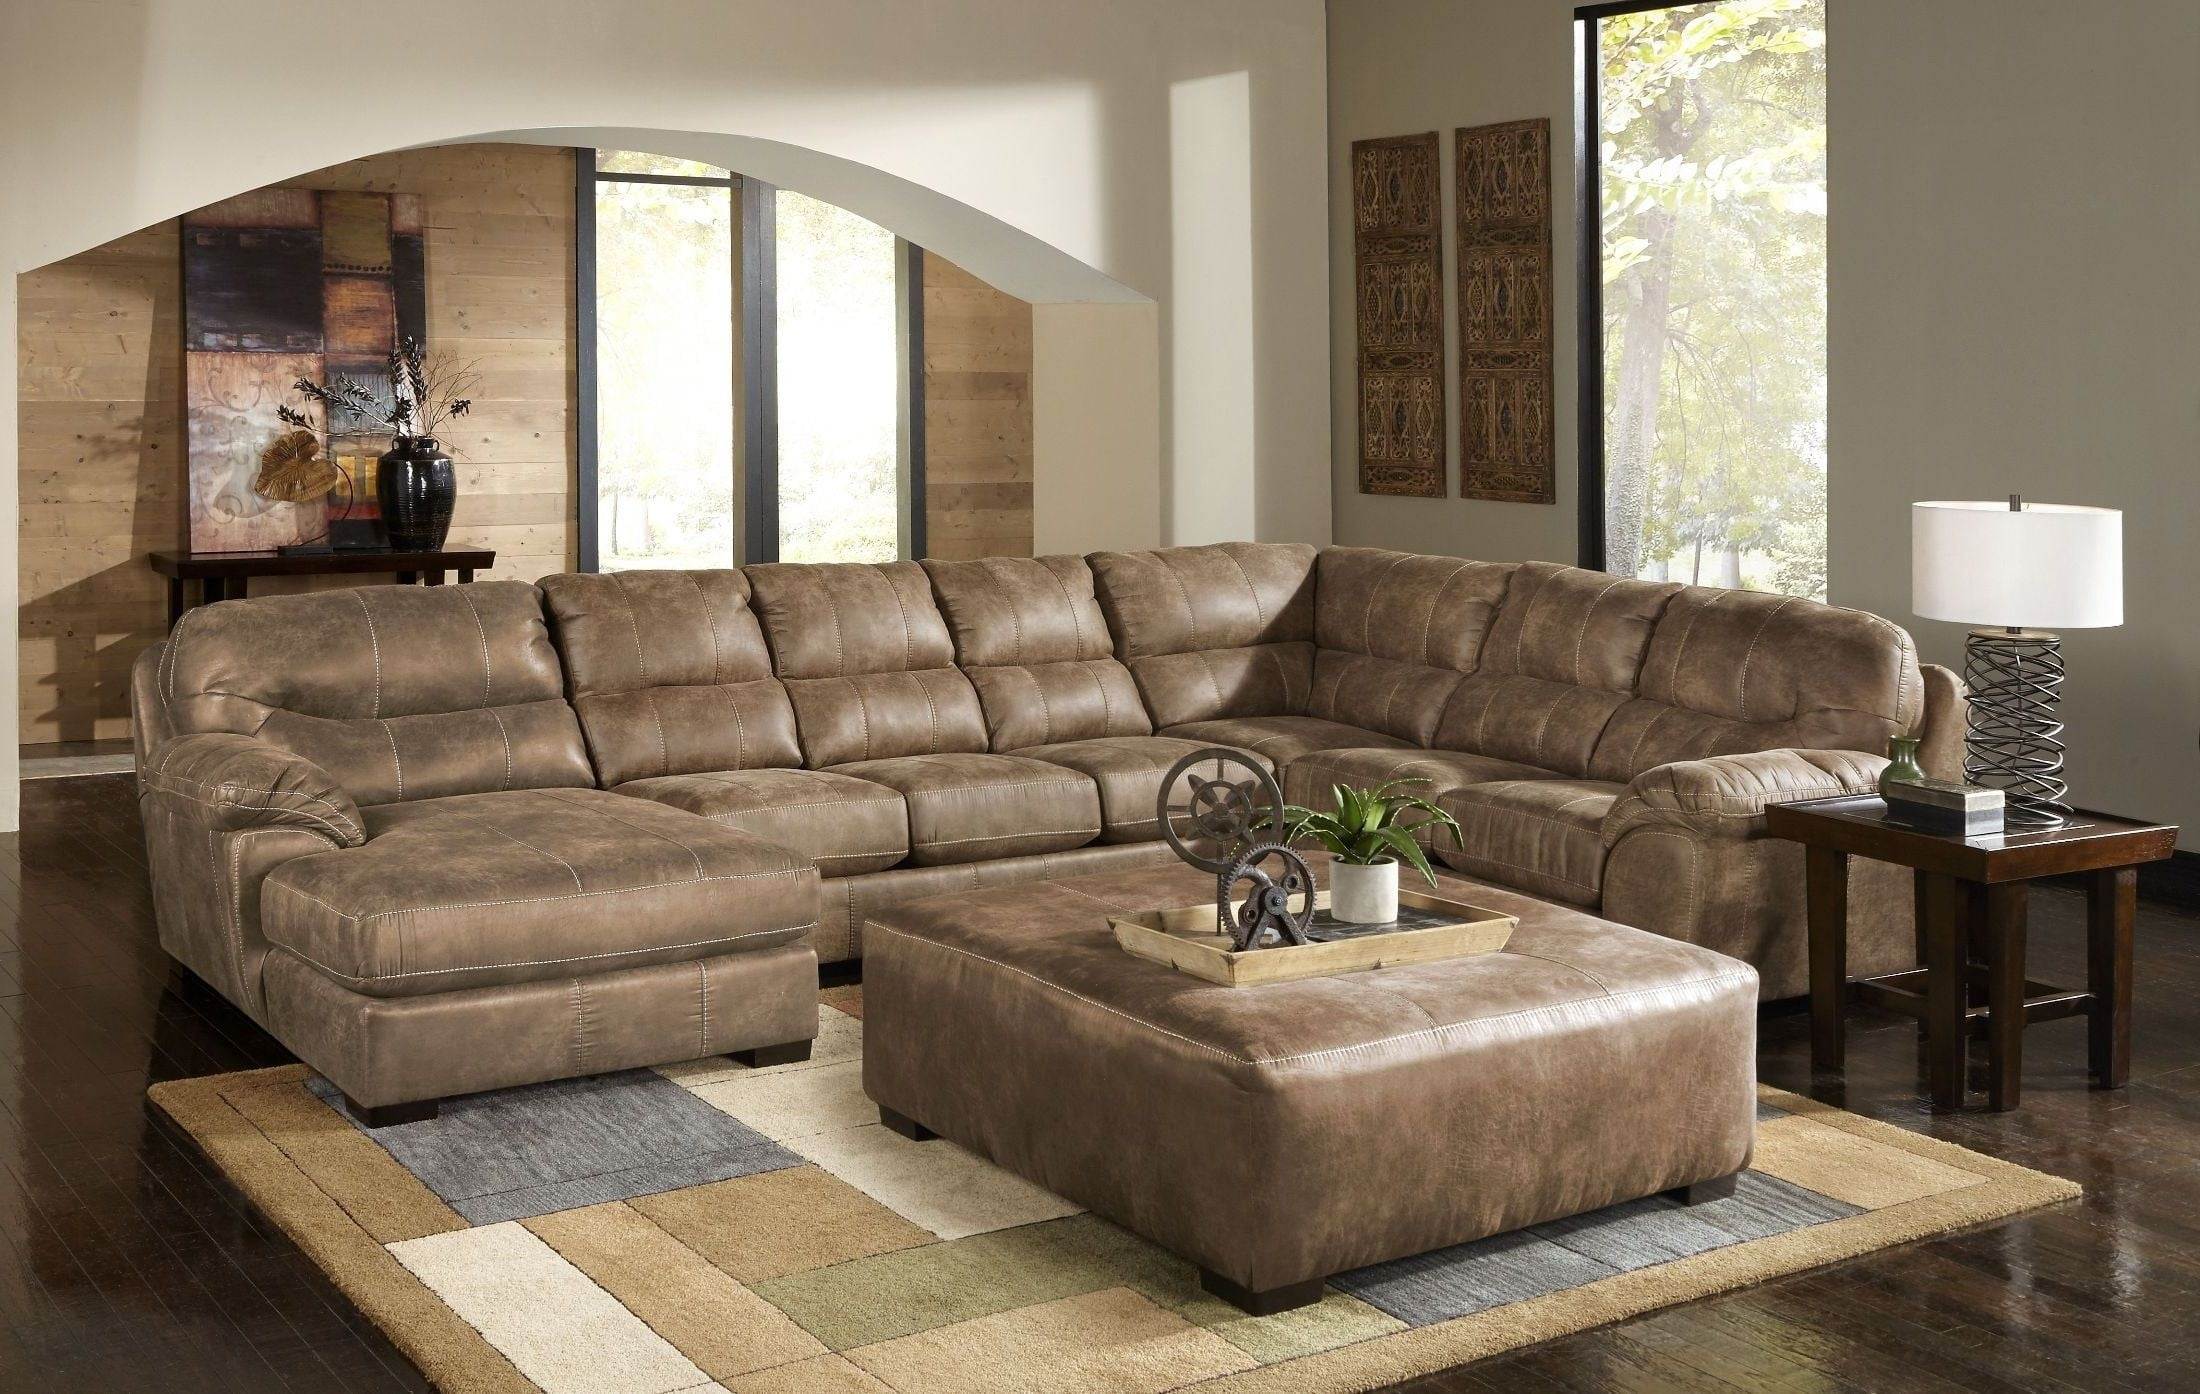 Grant Silt Laf Chaise Sectional, 4453-75-122749302749, Jackson inside Avery 2 Piece Sectionals With Laf Armless Chaise (Image 13 of 30)